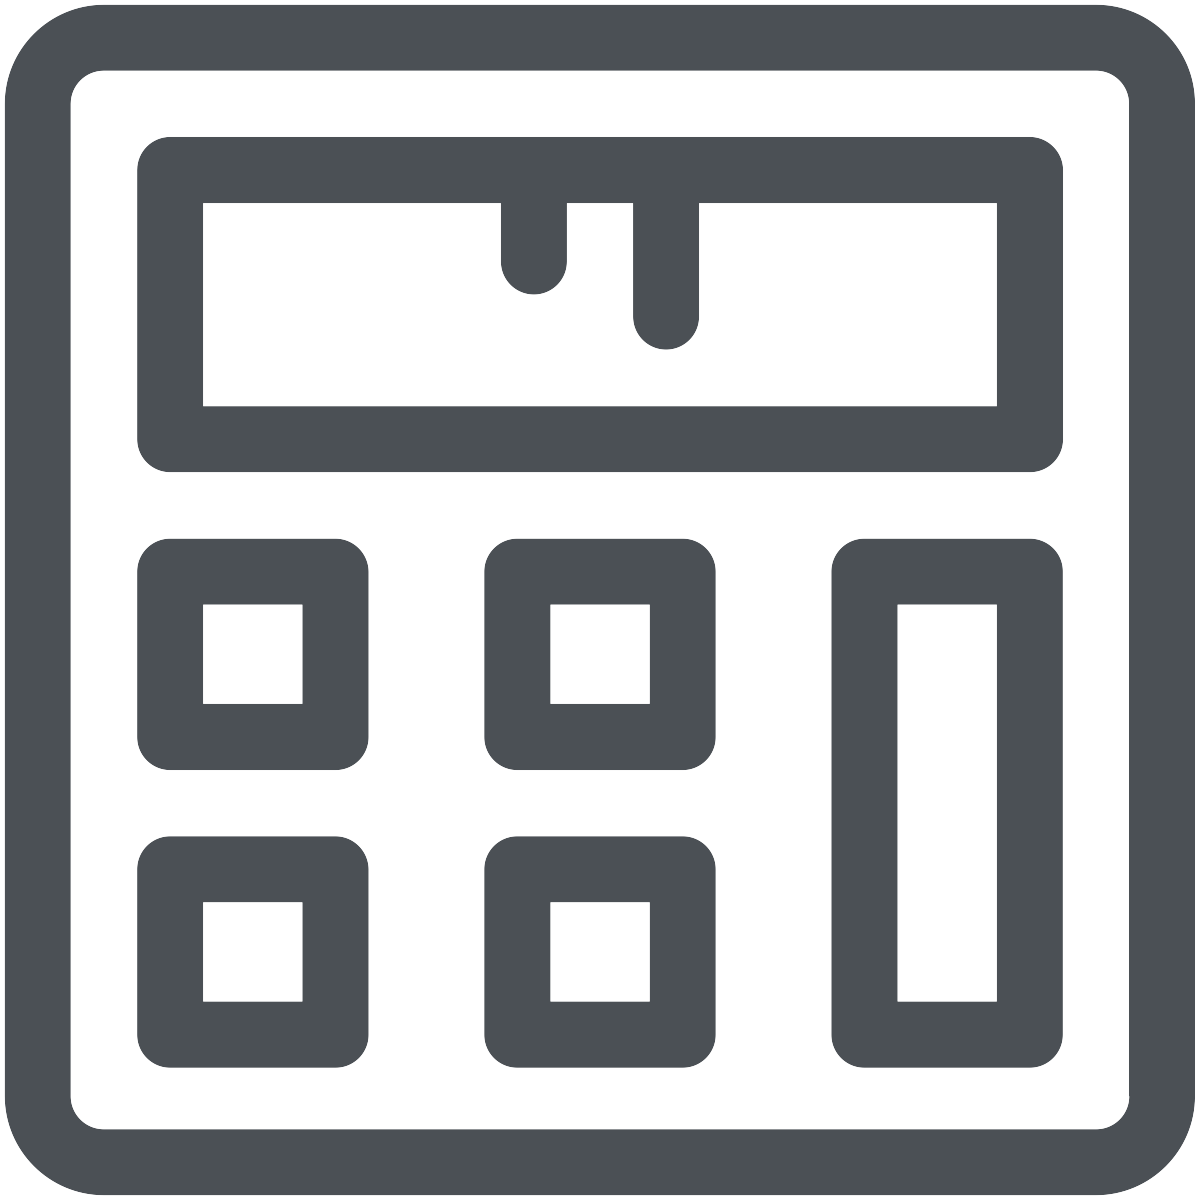 Accounting grey icon